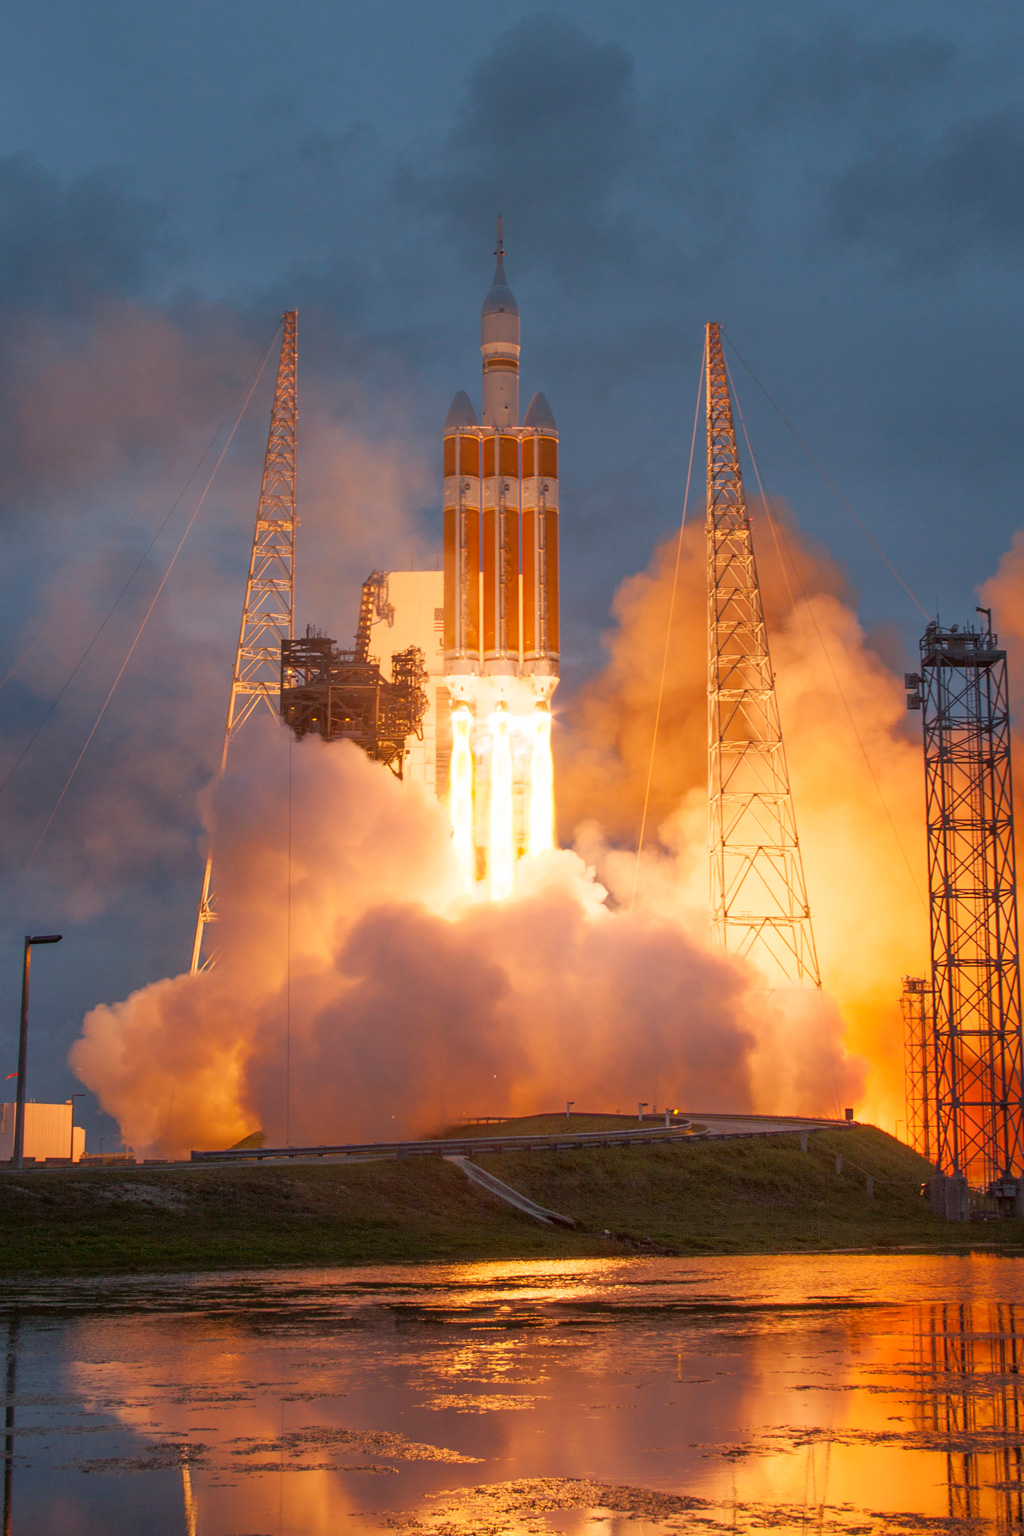 nasa orion launch hq high res photos (7) «TwistedSifter